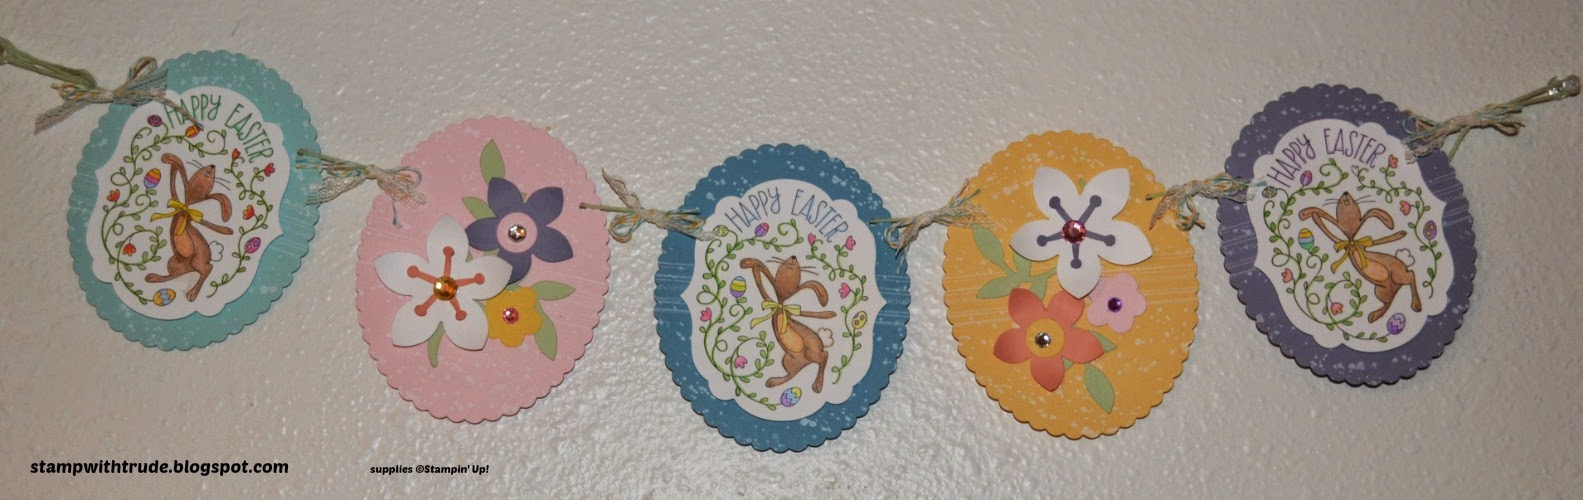 Happy Easter Bunny Banner, stampwithtrude.blogspot.com, trude thoman, Stampin' Up!, Flower Frenzy